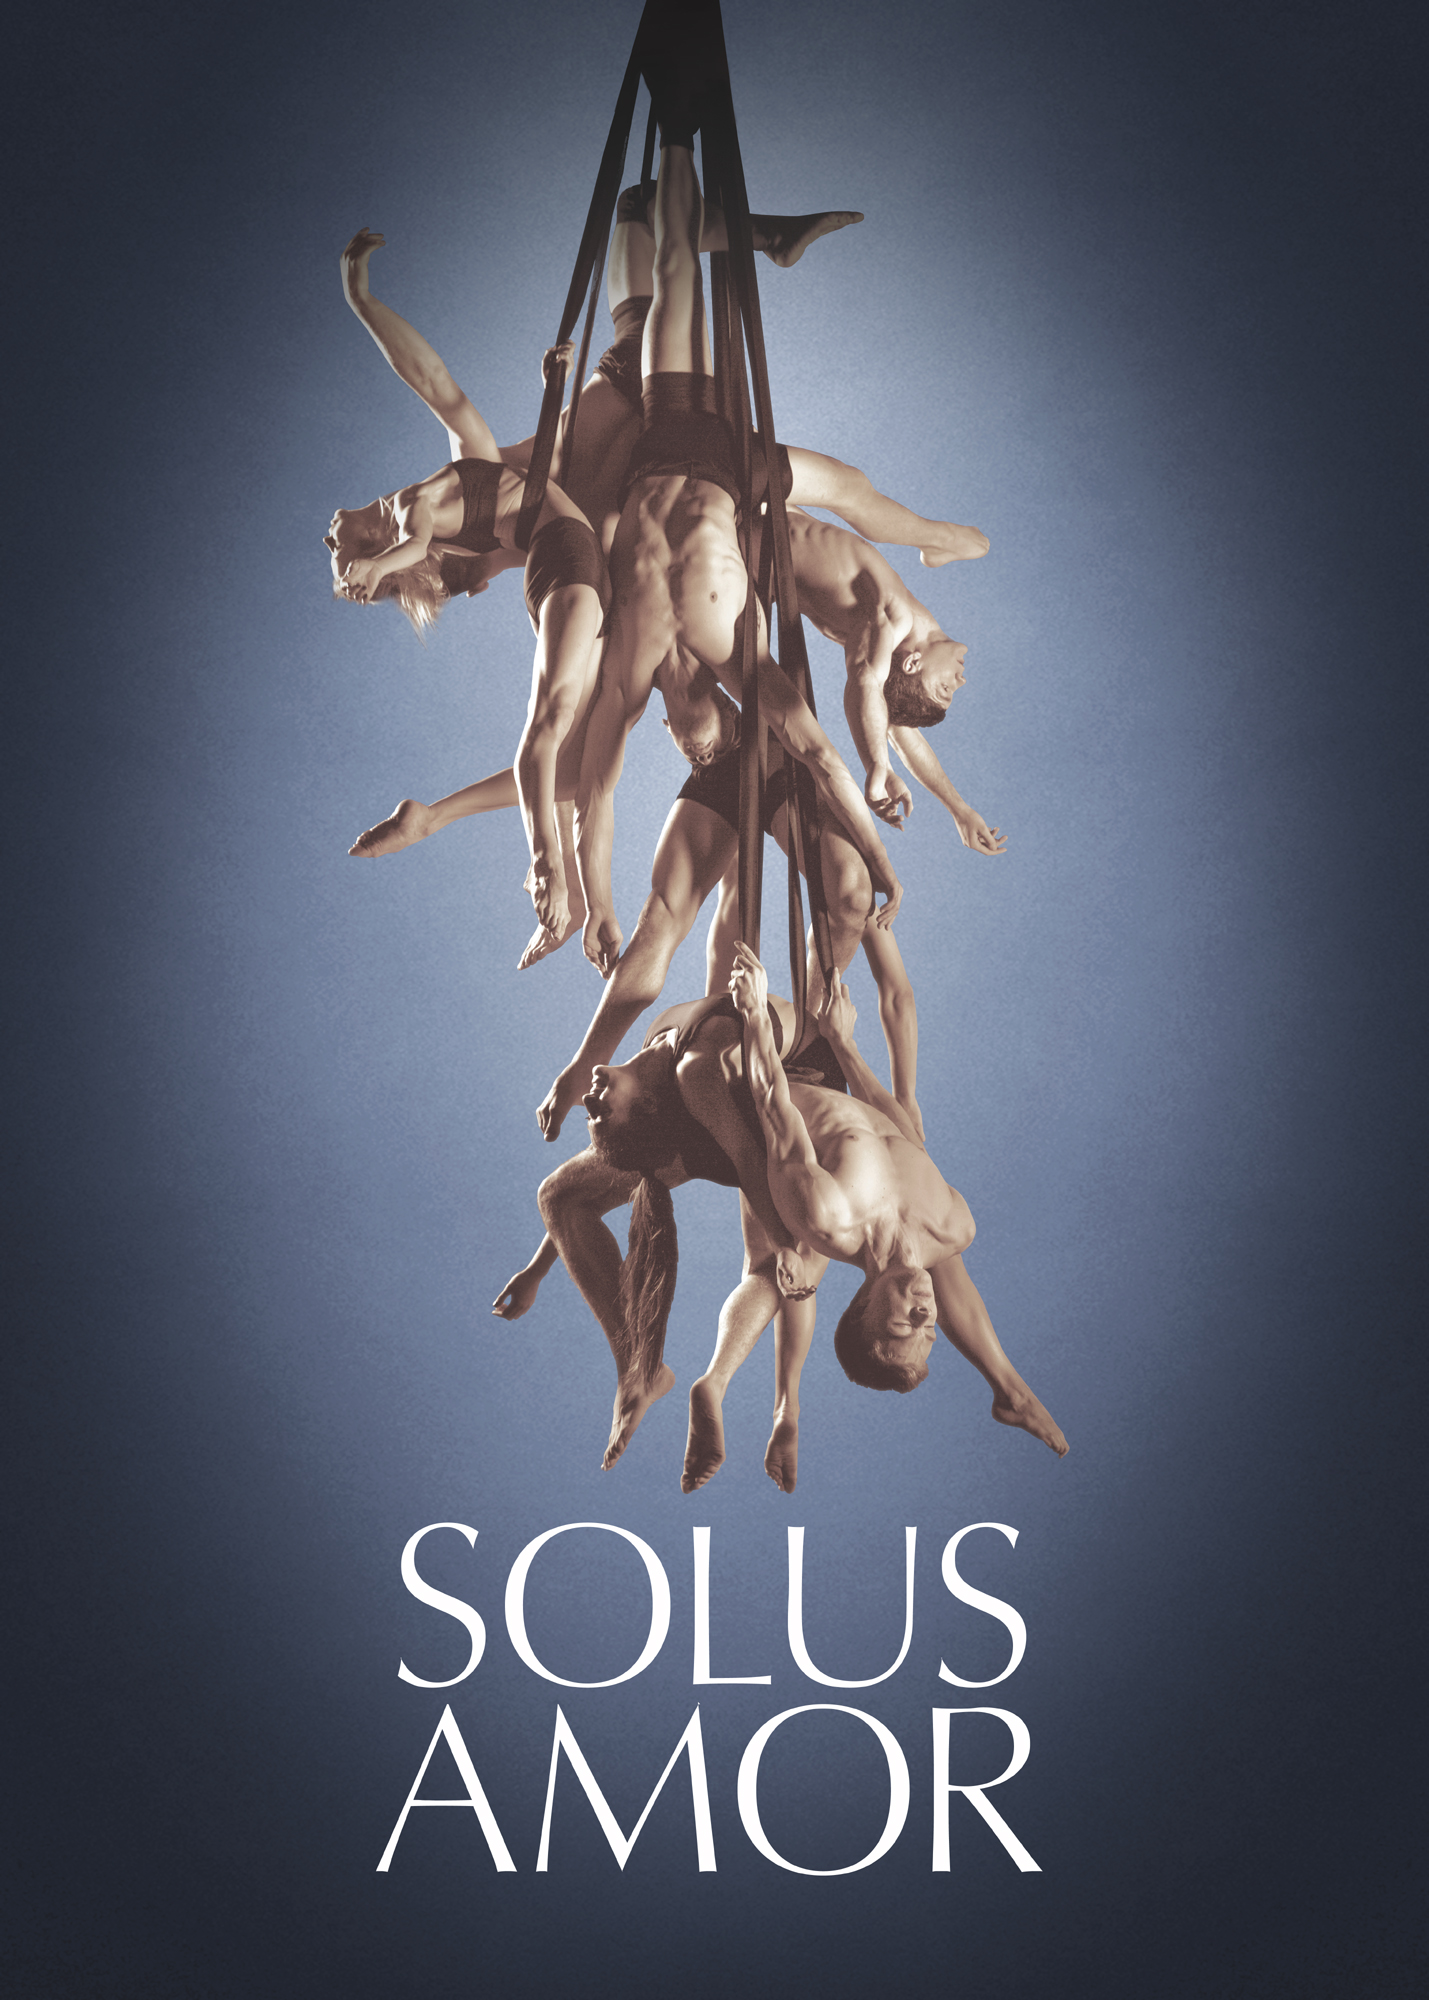 Watch the teaser trailer of Solus Amor, our new show in the making!